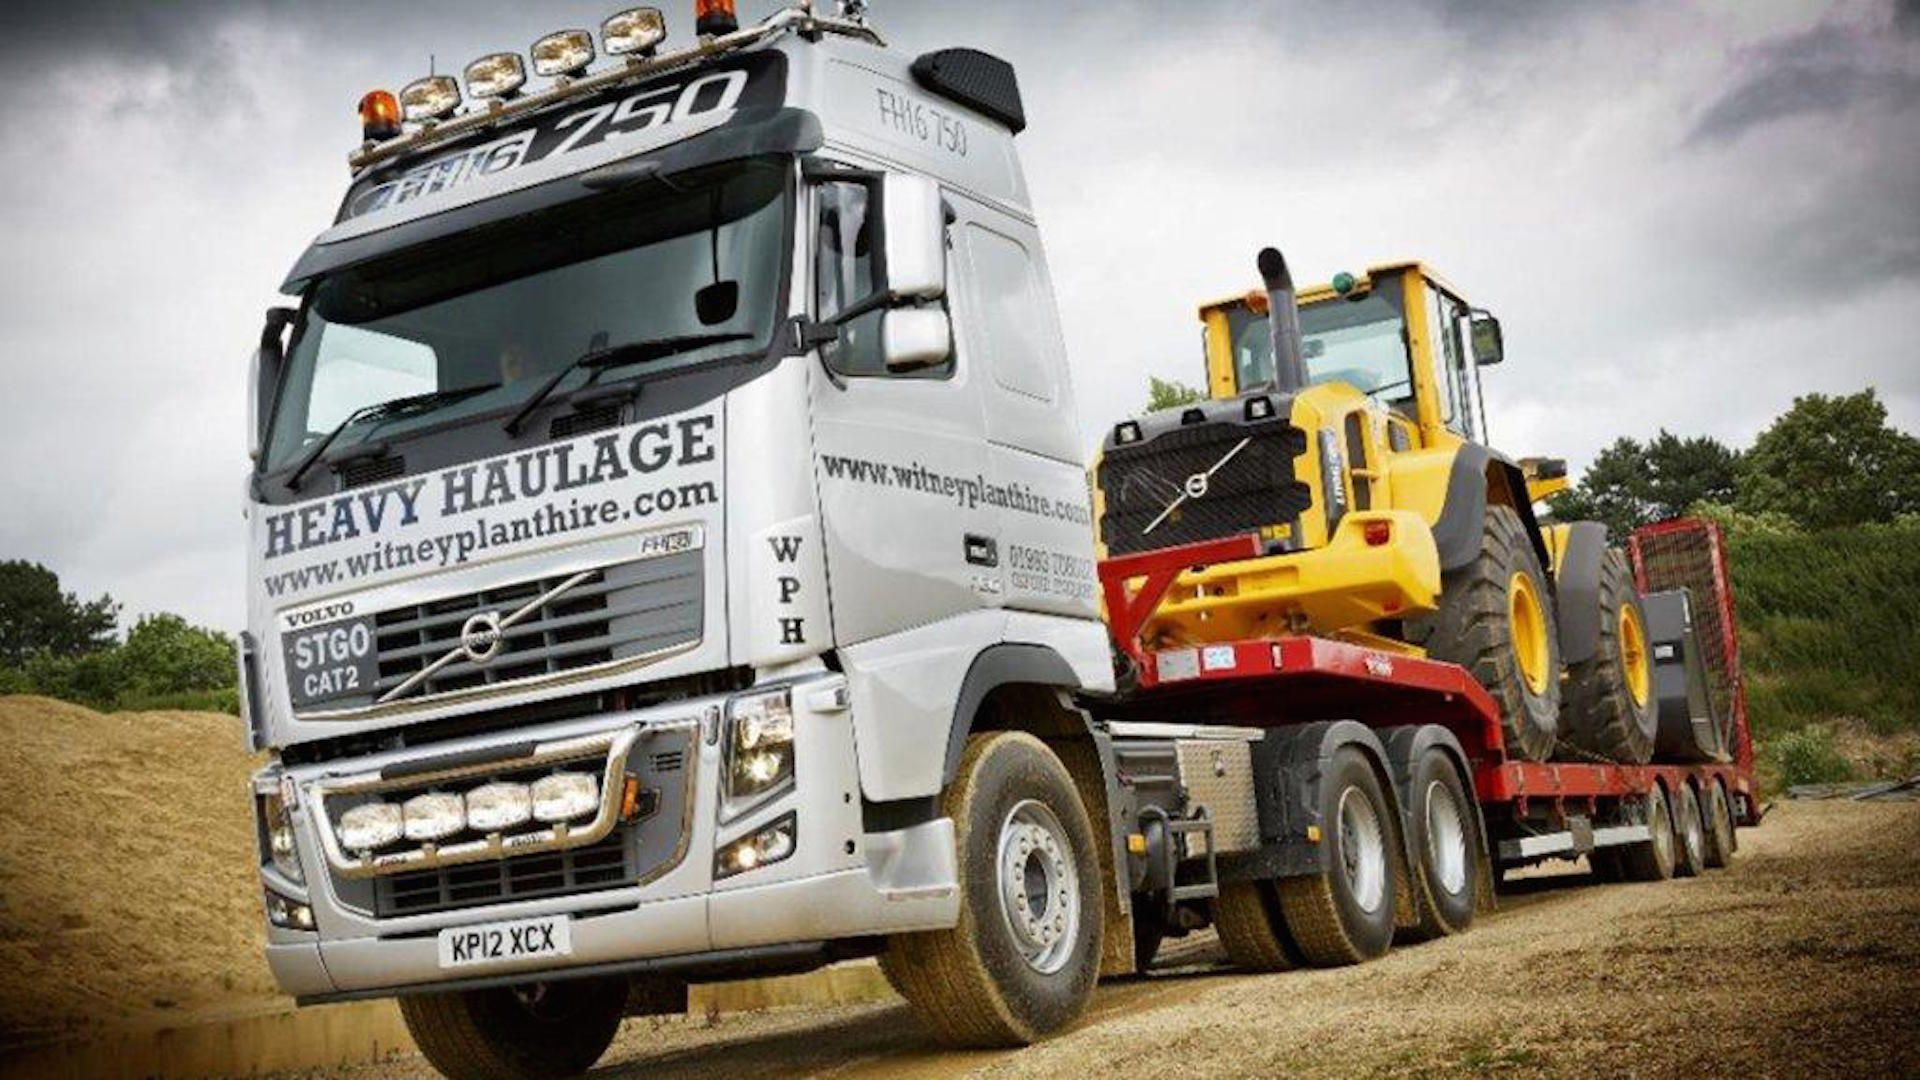 Witney Plant Hire specialise in Plant, Tool, Crane hire ...